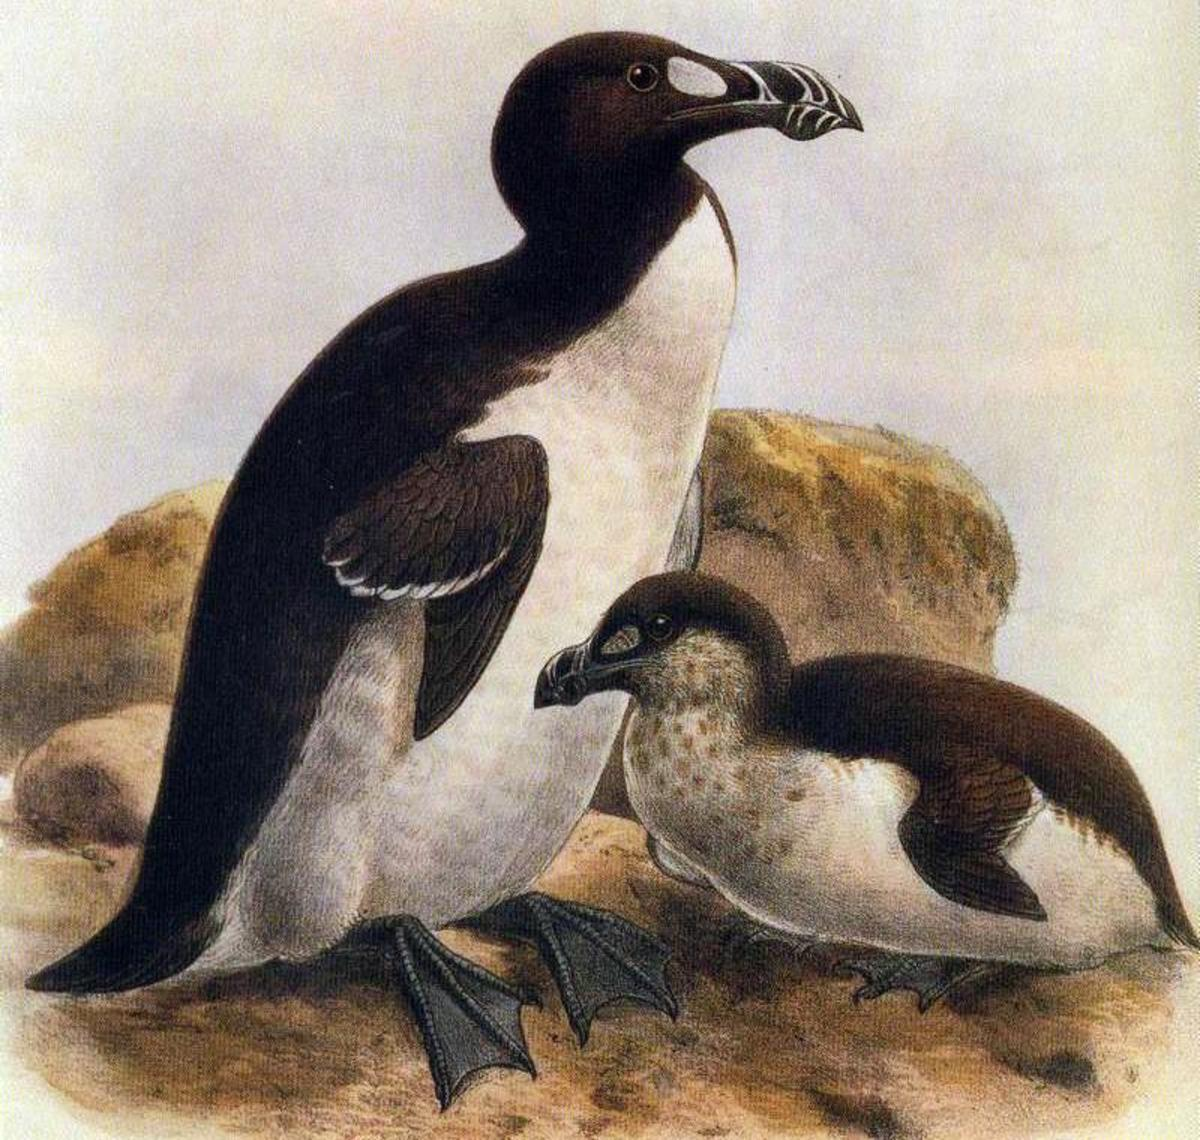 The Great Auk had a similar appearance to present day penguins.